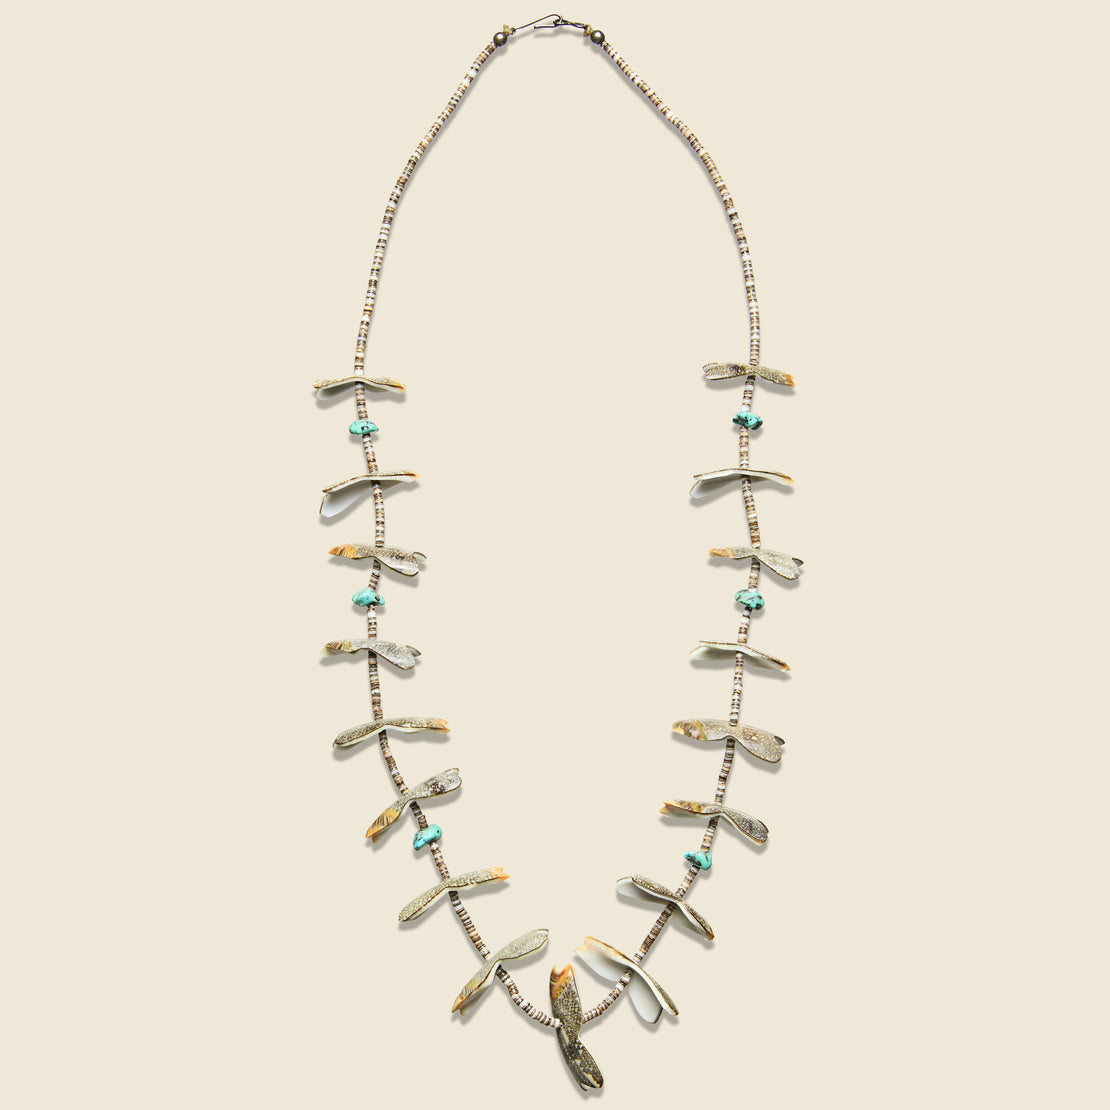 Vintage Nugget Shell & Turquoise Heishe Bead Fetish Necklace.